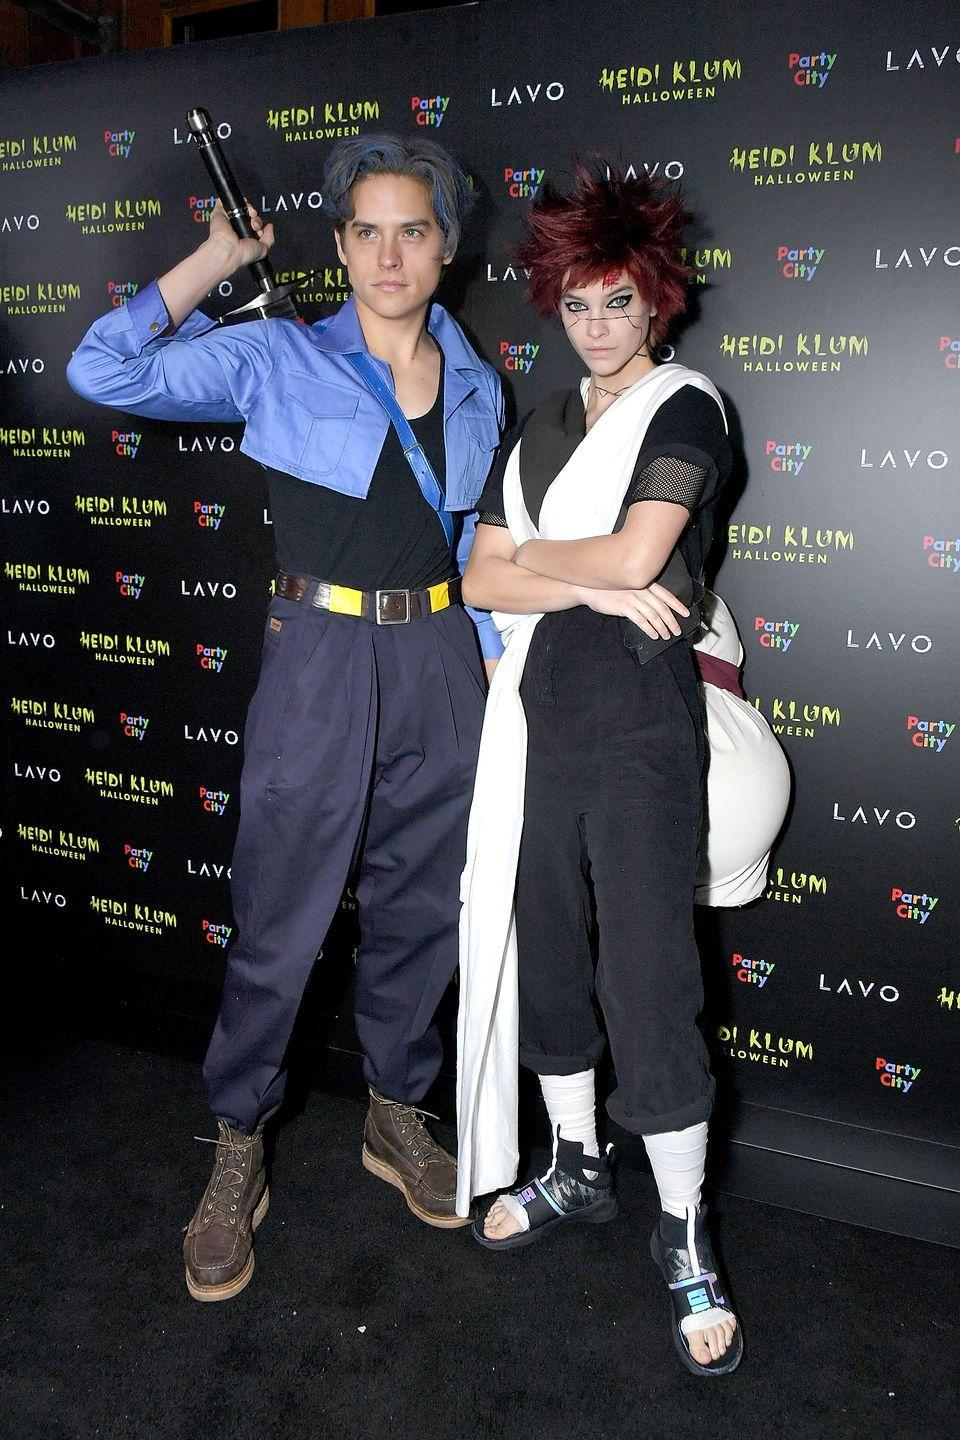 <p>At Heidi Klum's famed Halloween bash in 2018, Dylan Sprouse and Barbara Palvin donned coordinating anime costumes. (Visit a cosplay store for an easy re-creation.)</p>